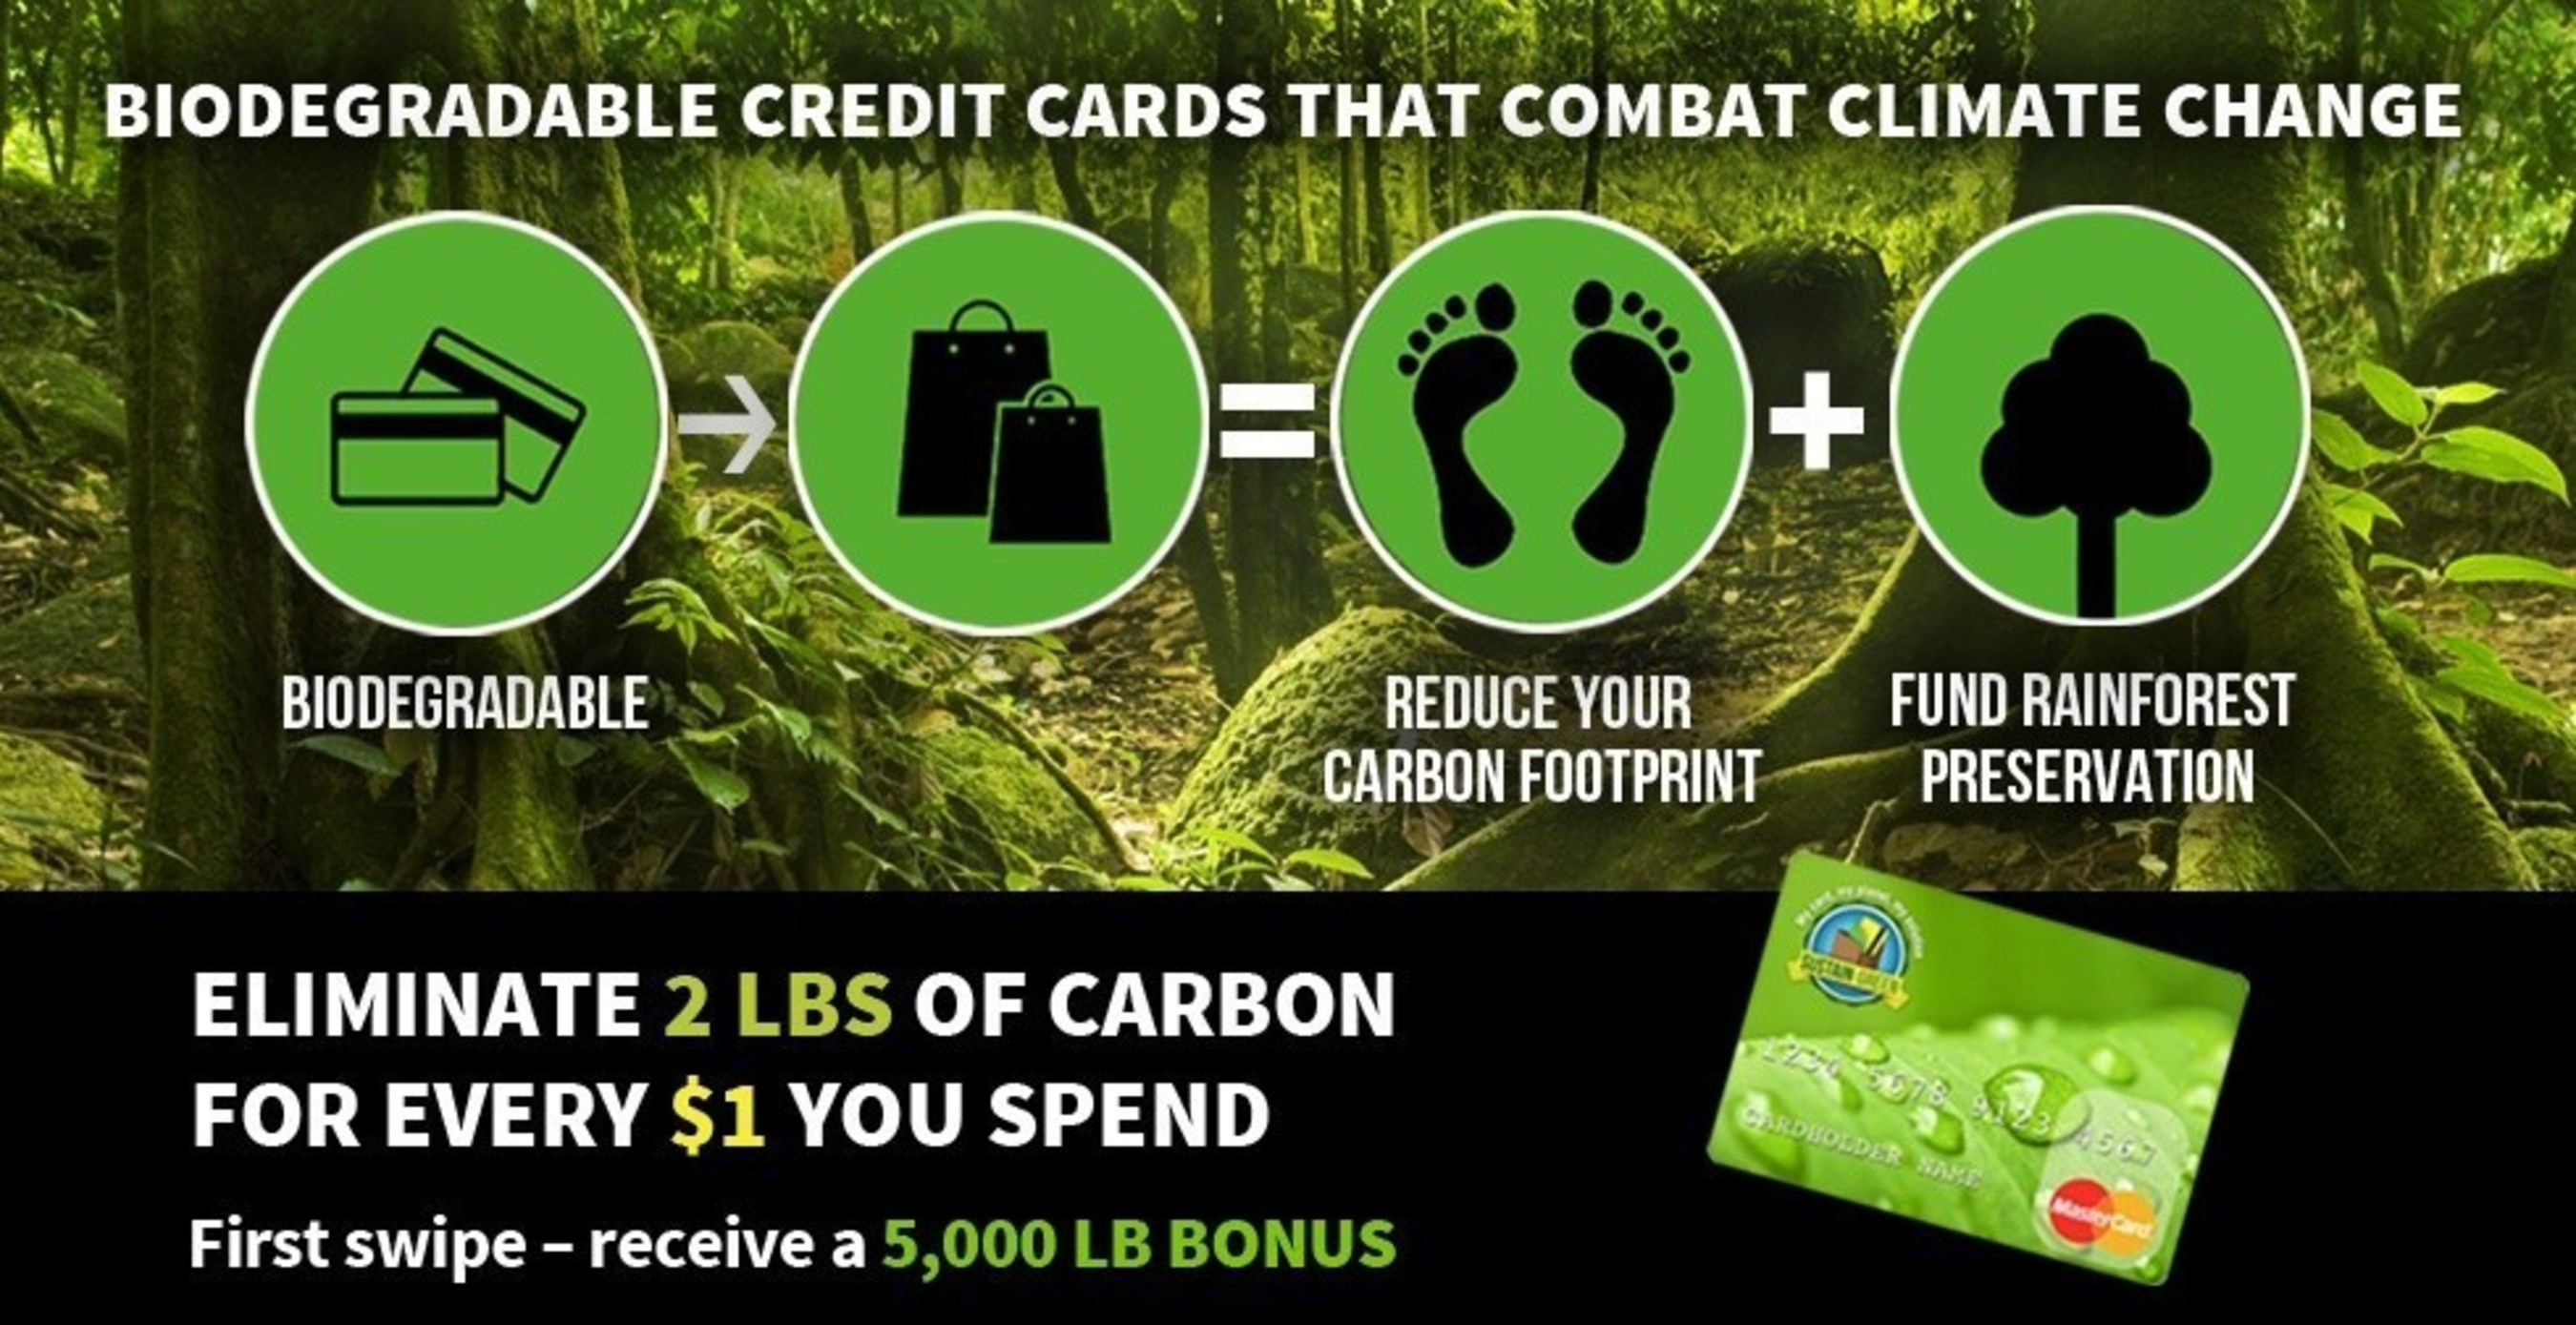 New biodegradable Sustain:Green MasterCard rewards cardholders with carbon offsets on their everyday purchases to help fund rainforest preservation projects in Brazil.